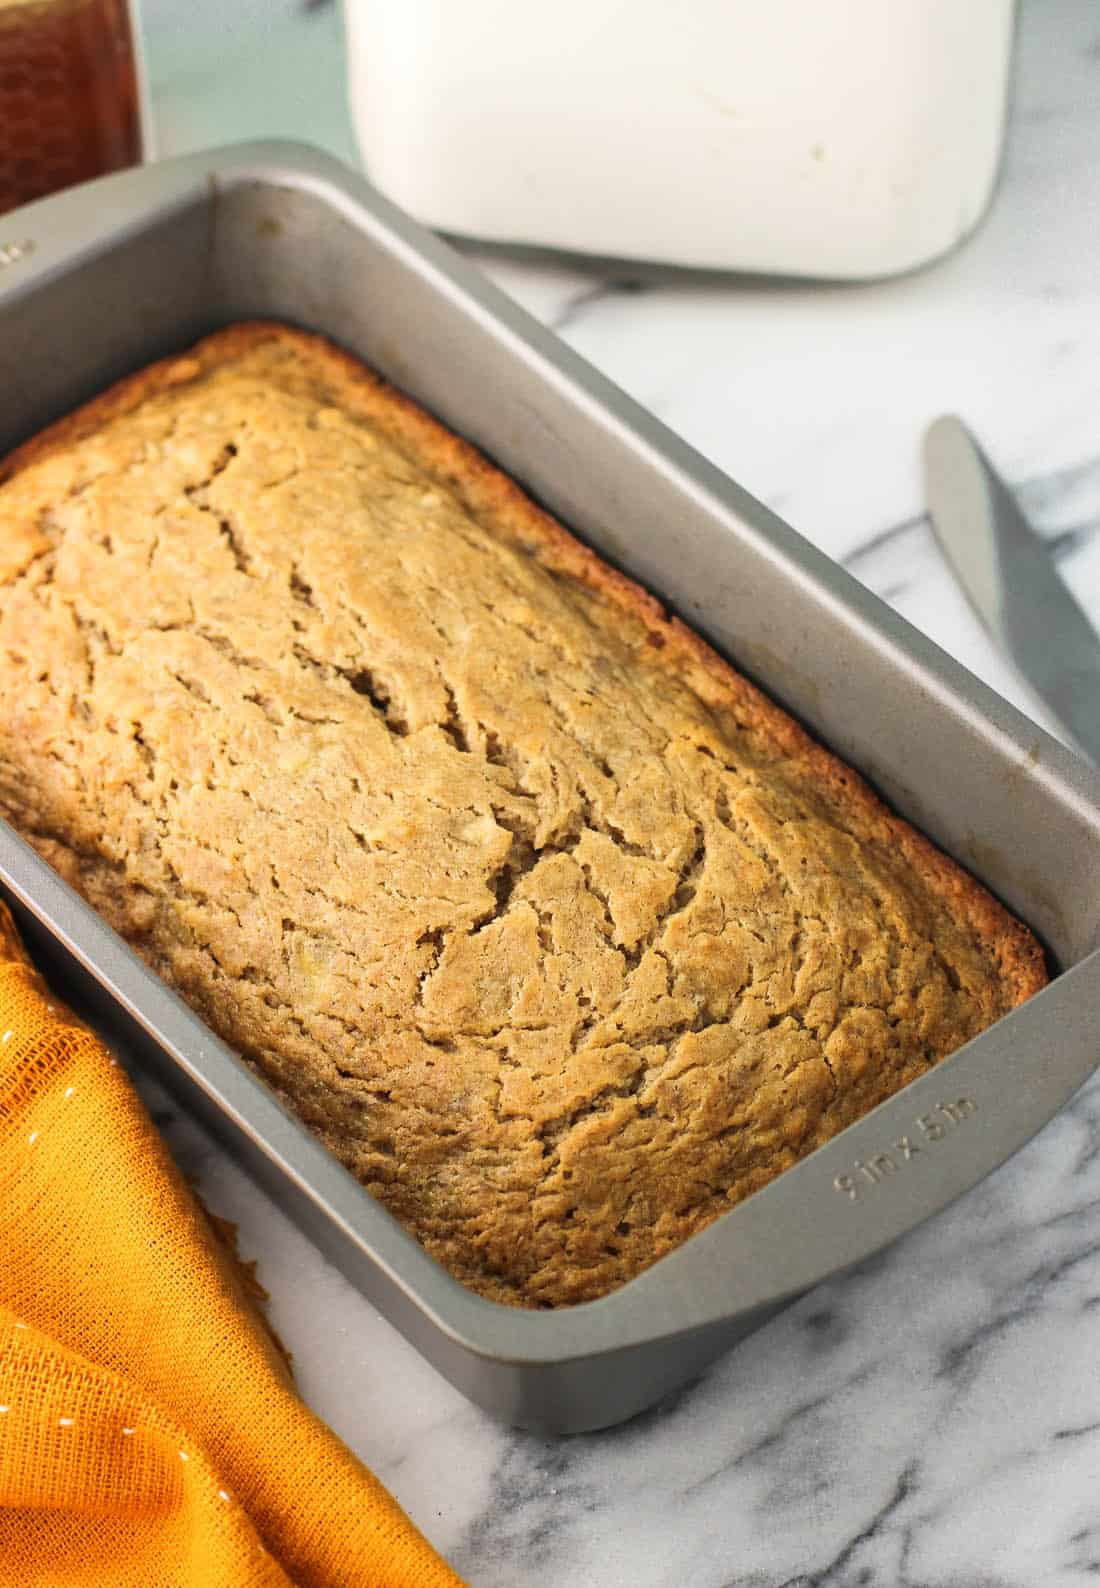 Naturally sweetened banana bread is as tender and flavorful as classic versions, but is sweetened only with bananas and honey. Plus this one is dairy-free!